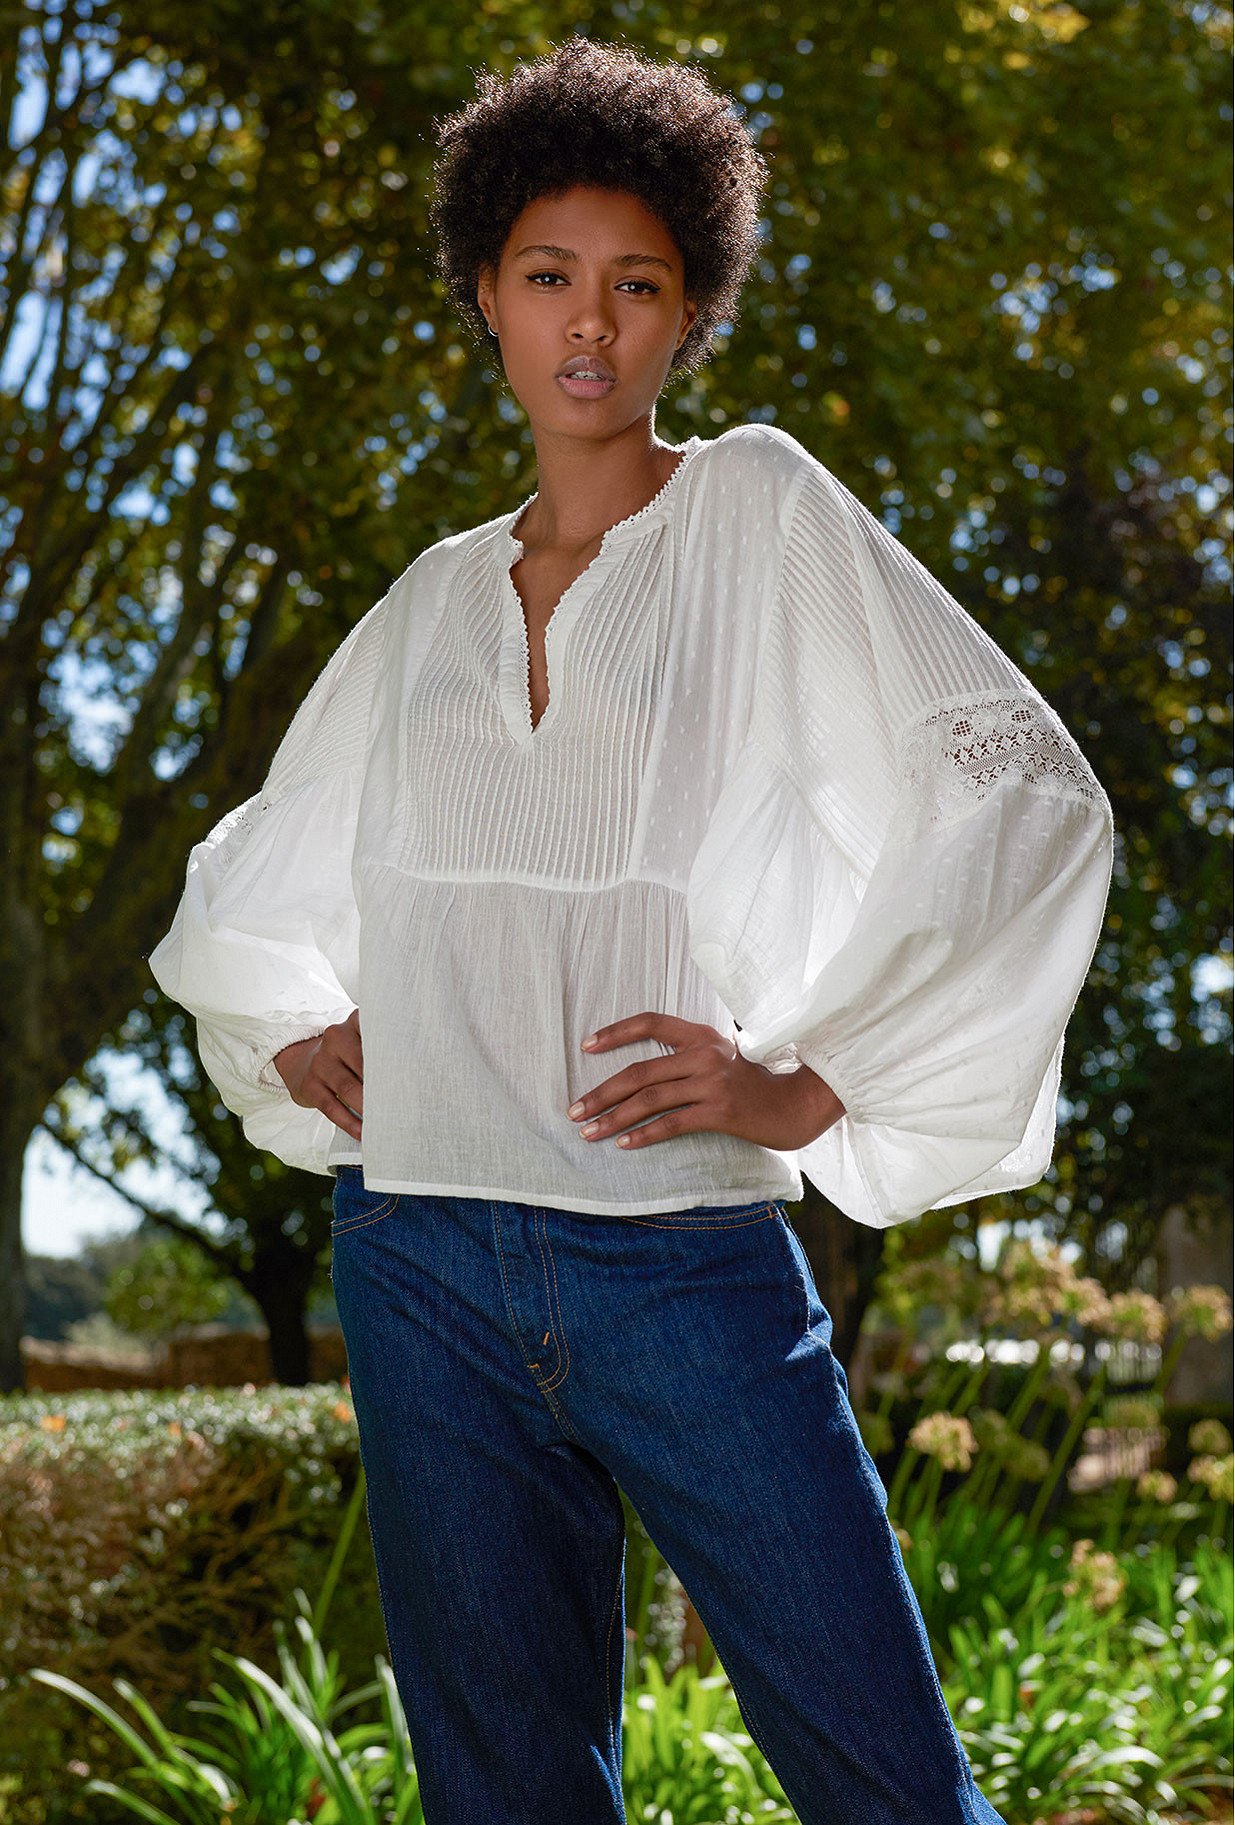 White  Blouse  Angela Mes demoiselles fashion clothes designer Paris